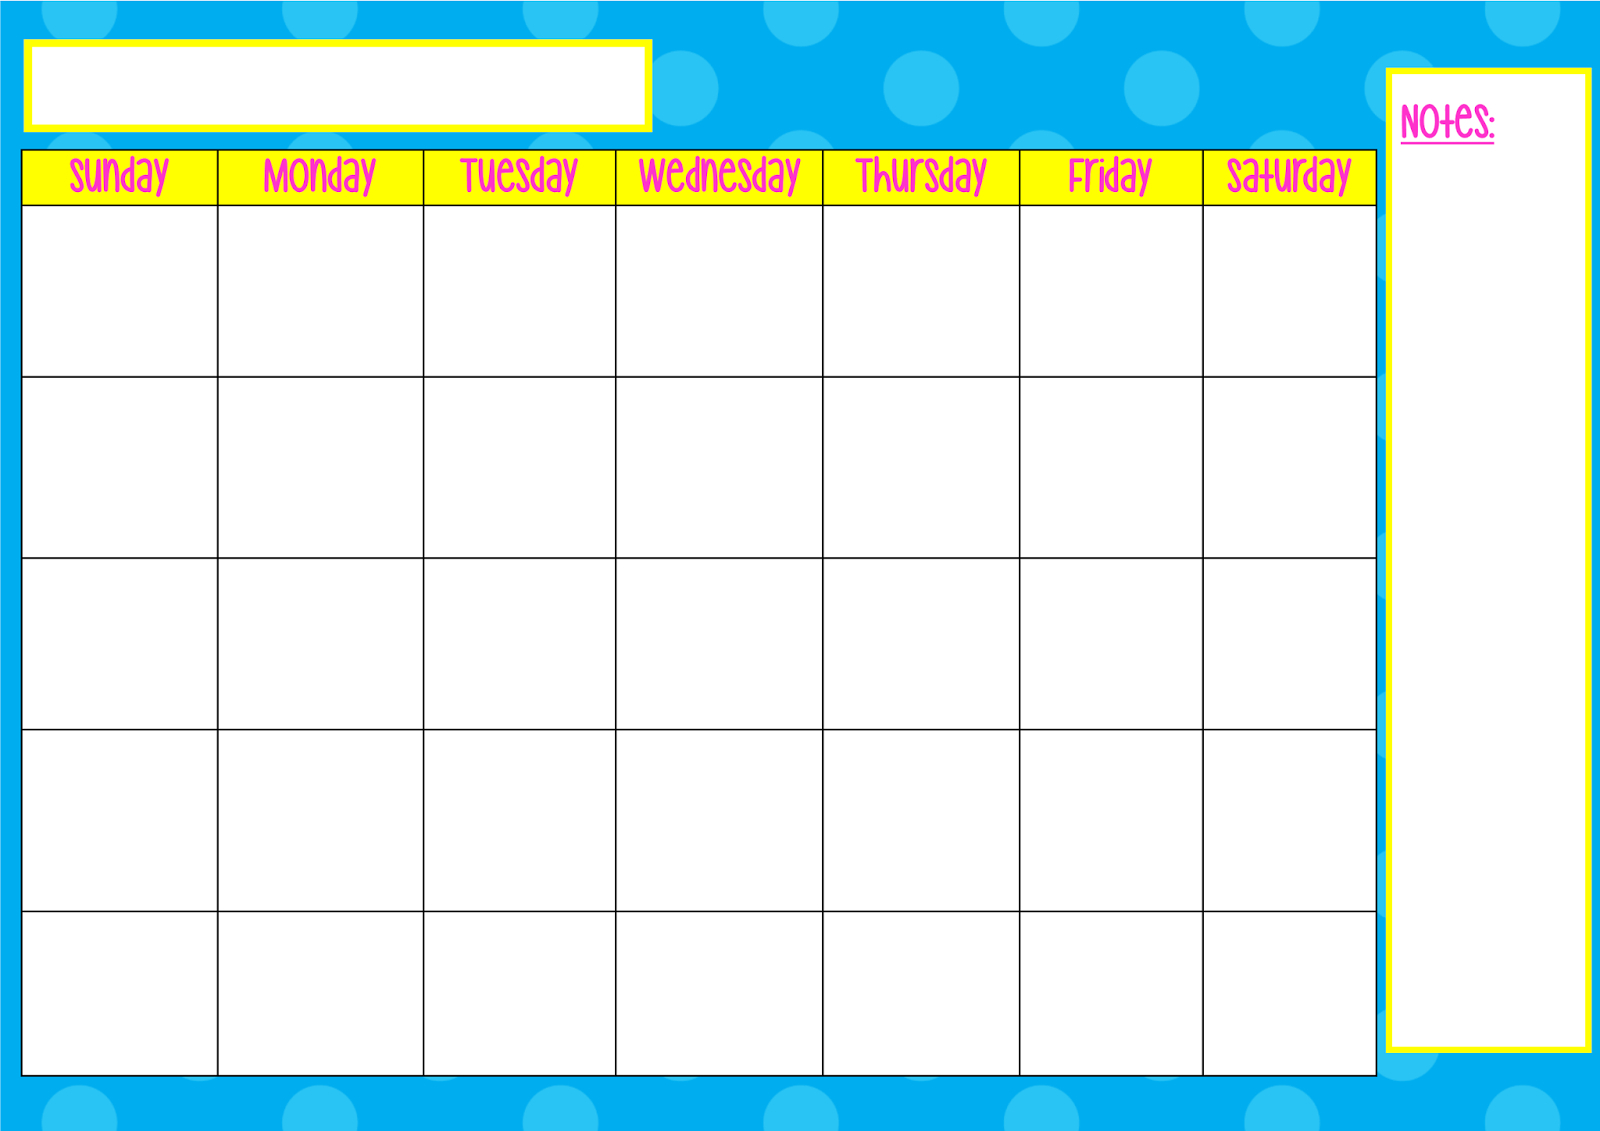 Monday Only Calendar with regard to Monday Through Saturday Schedule Template